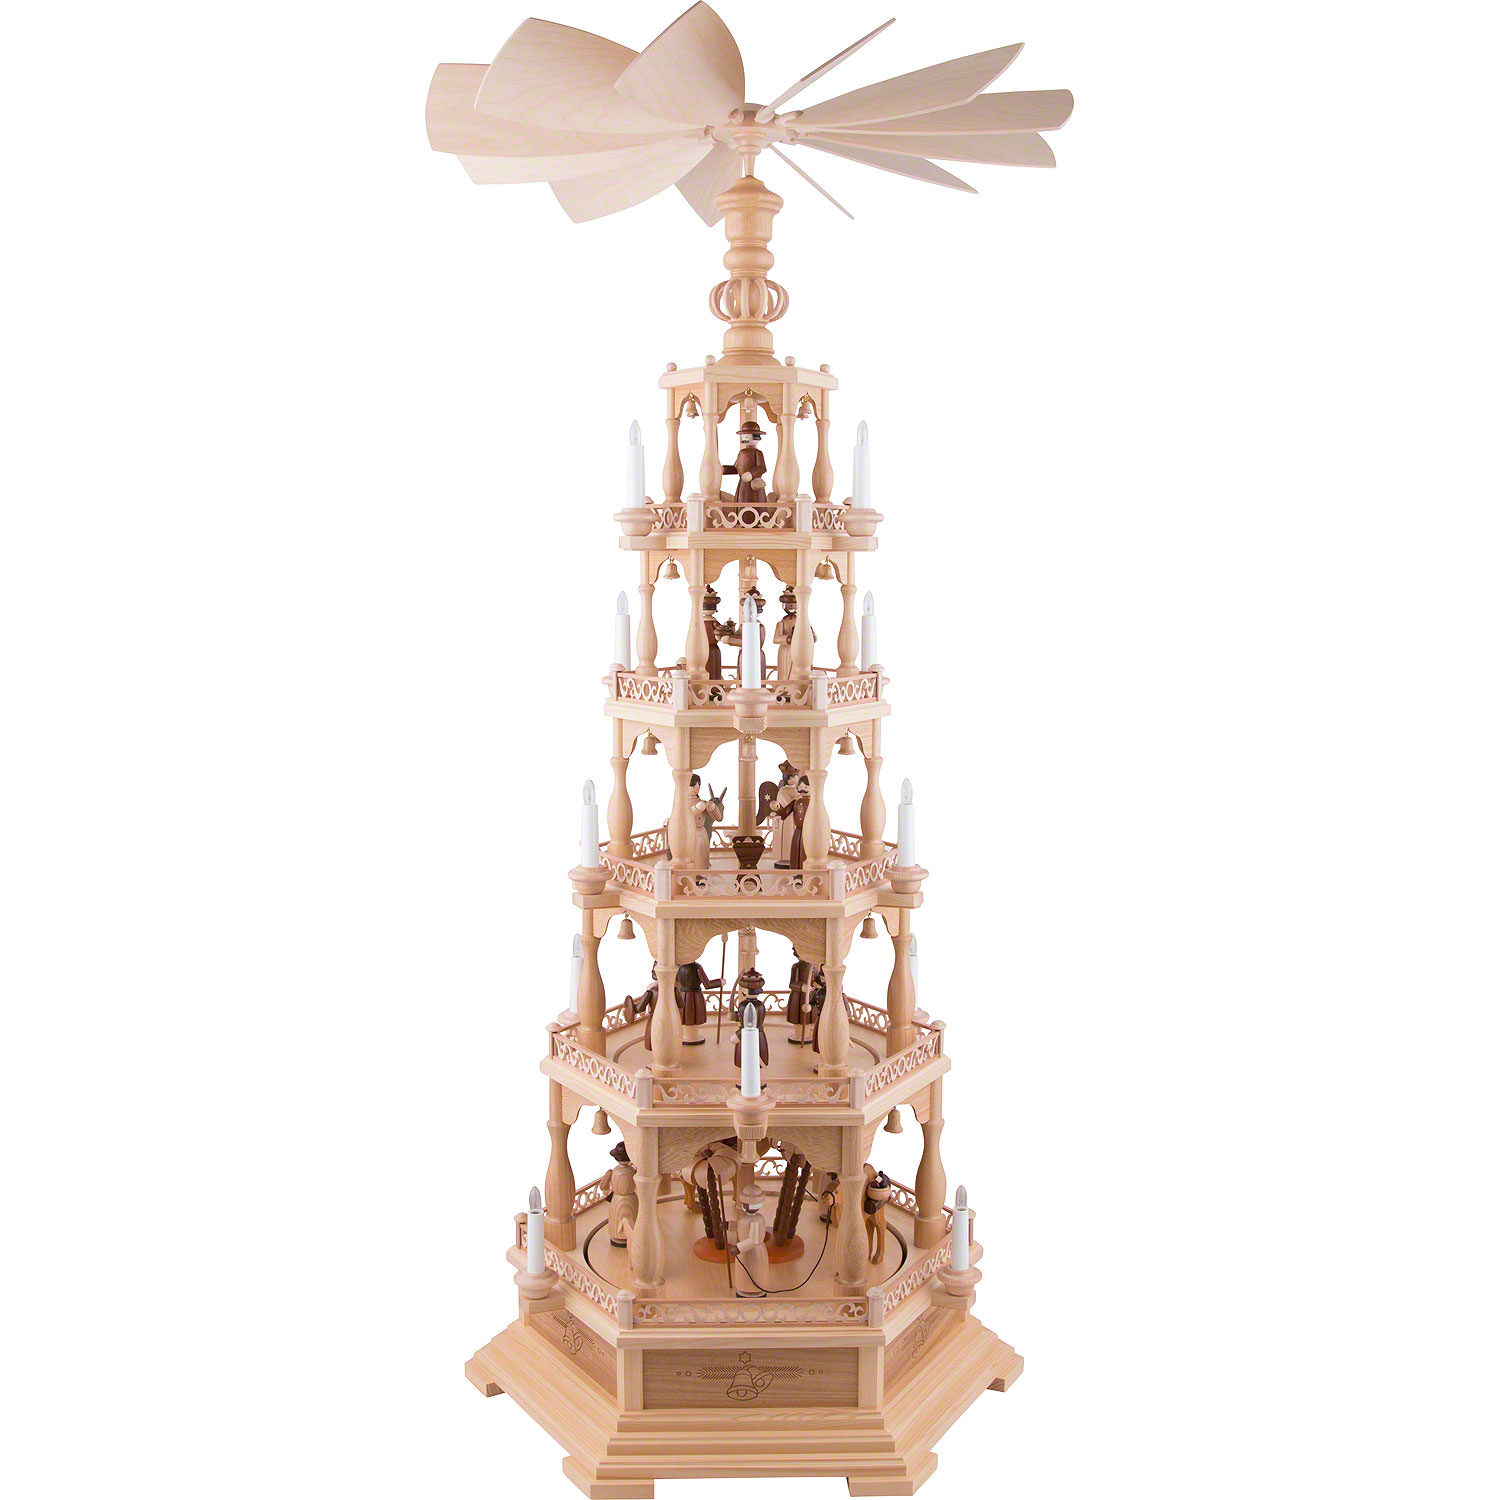 Led Weihnachtspyramide 5 Tier Pyramid The Christmas Story 142 Cm 56 Inch 120 V Electr Motor Us Standard